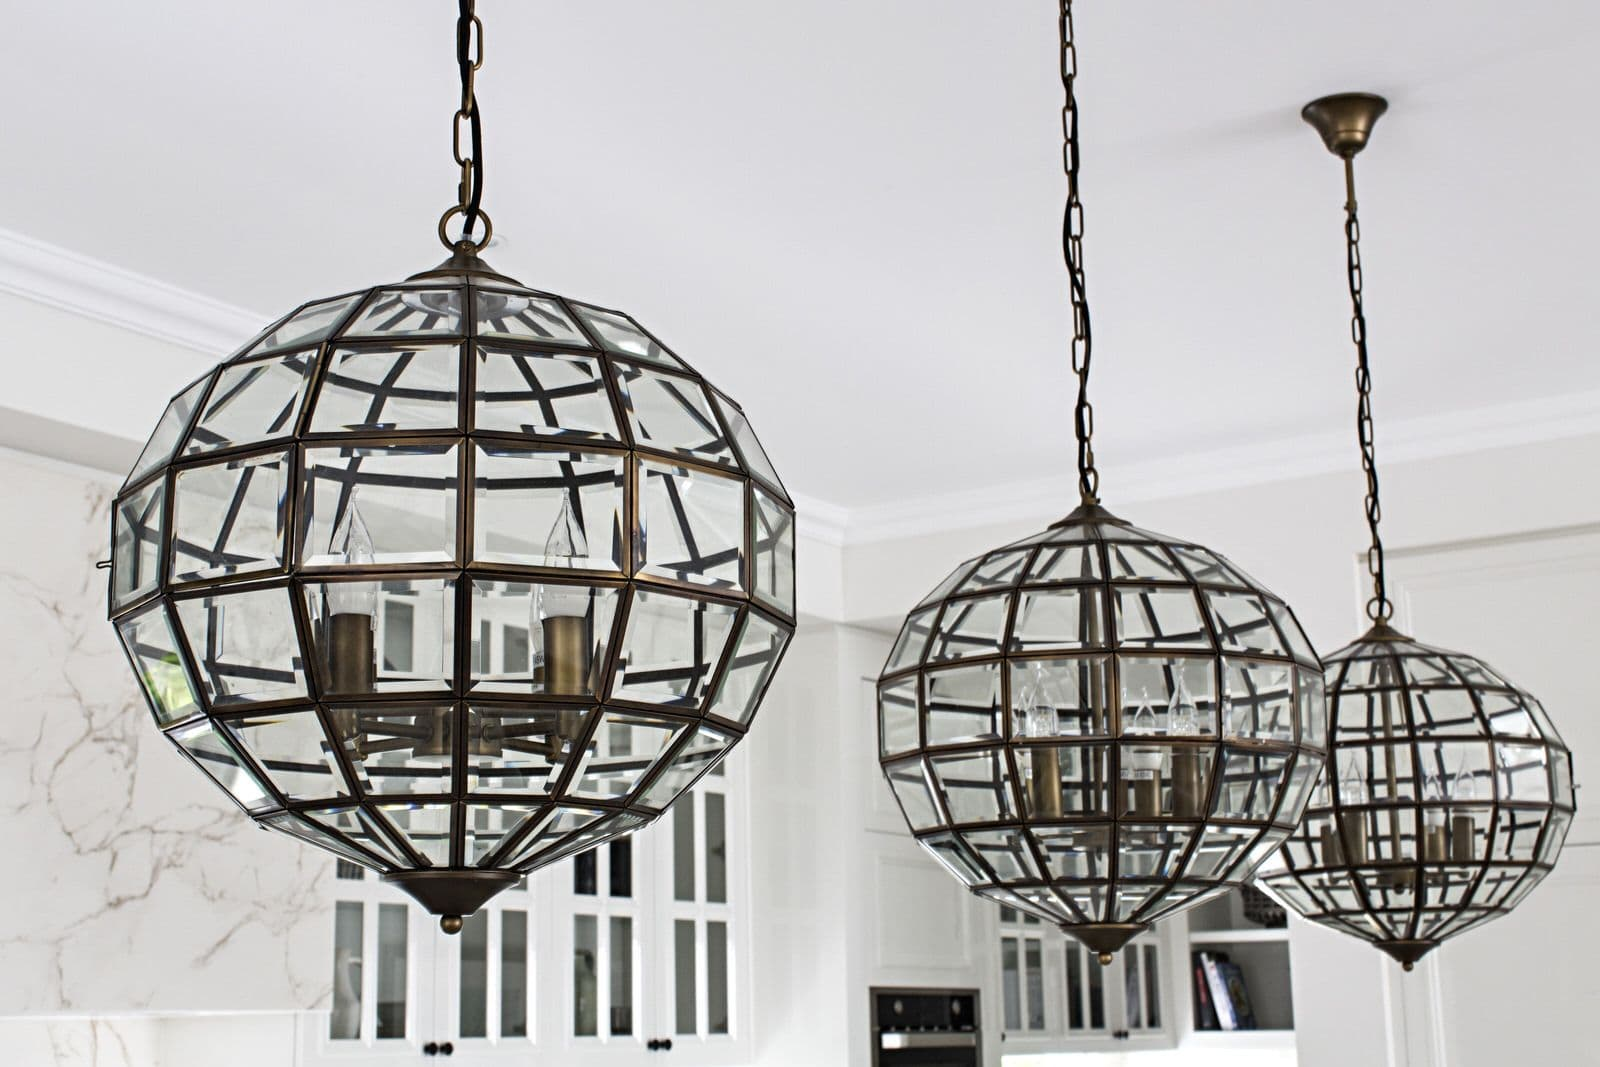 metricon la pyrenee kitchen pendant lights large round glass and metal art deco lights